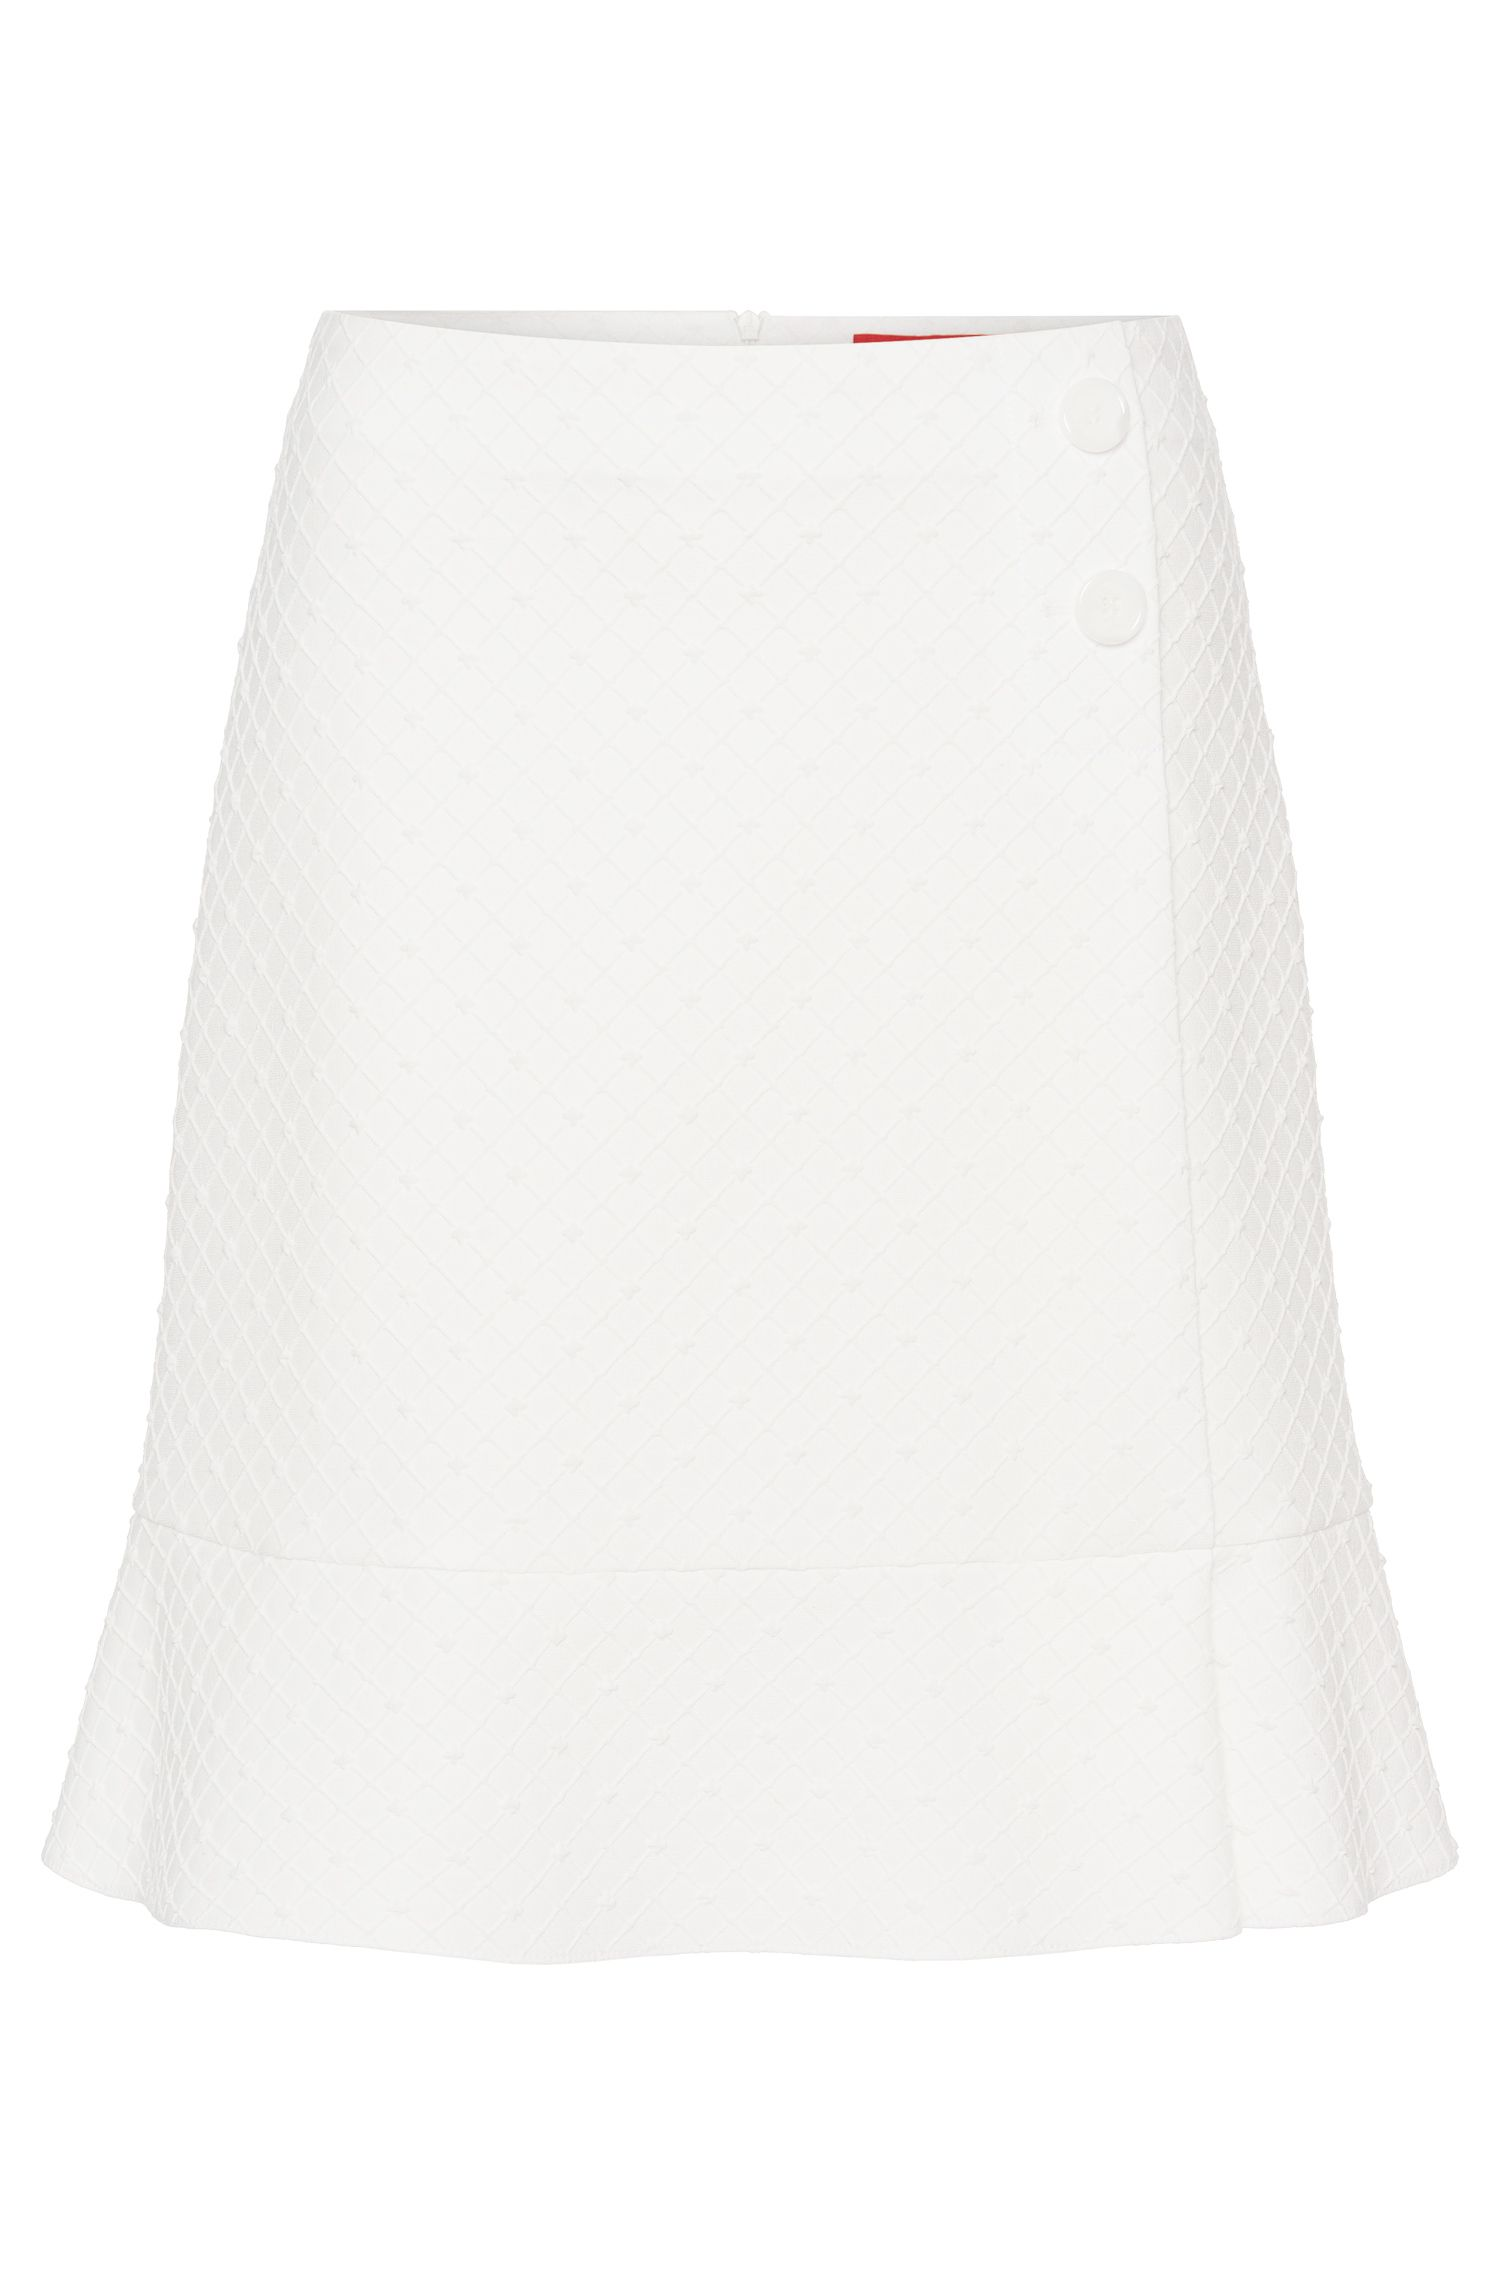 Solid-coloured skirt in textured fabric blend: 'Raina'